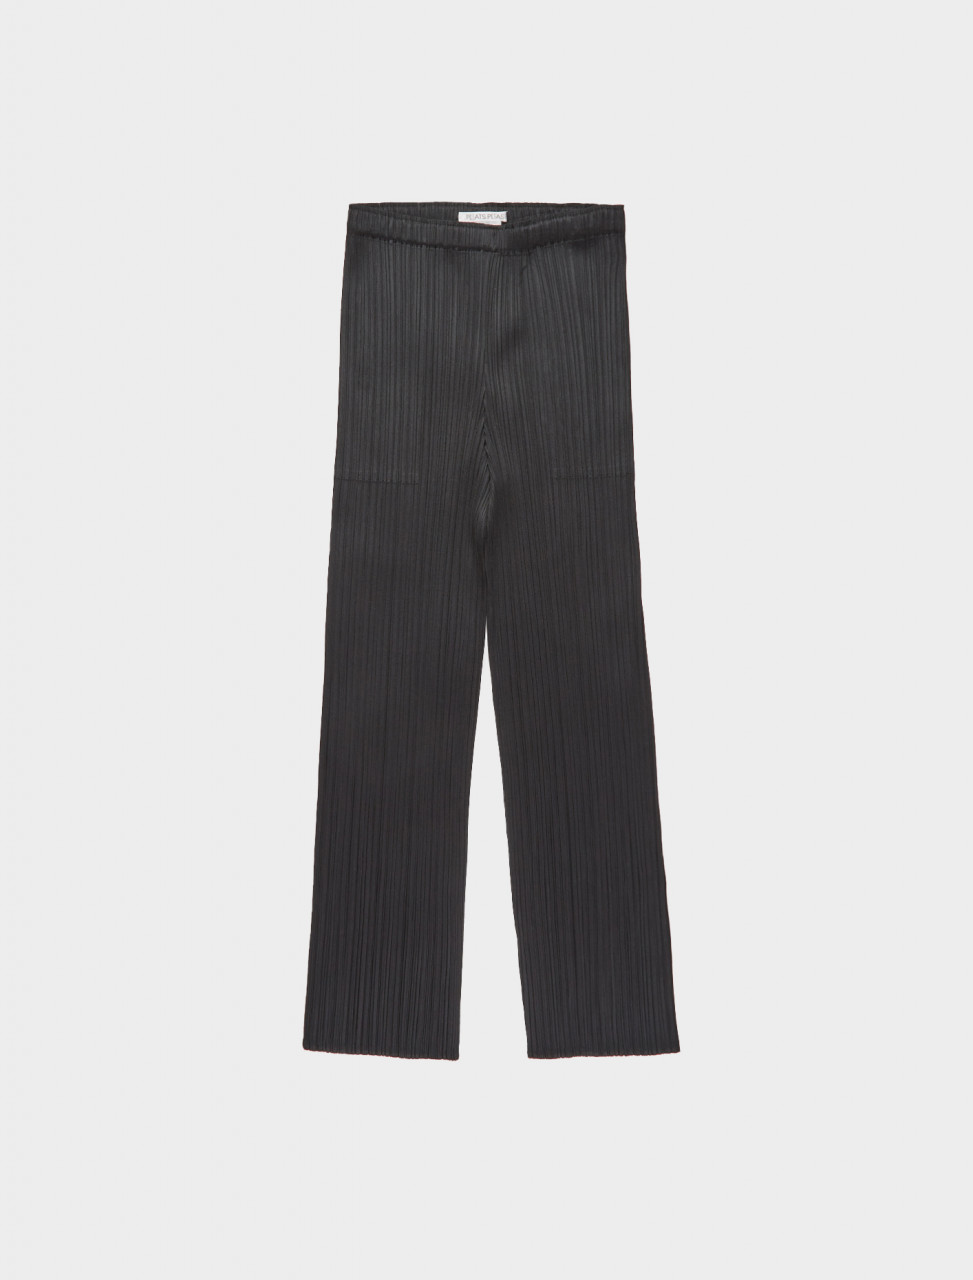 286-PP08JF111-15 ISSEY MIYAKE PLEATS PLEASE TAPERED CROPPED TROUSERS BLACK